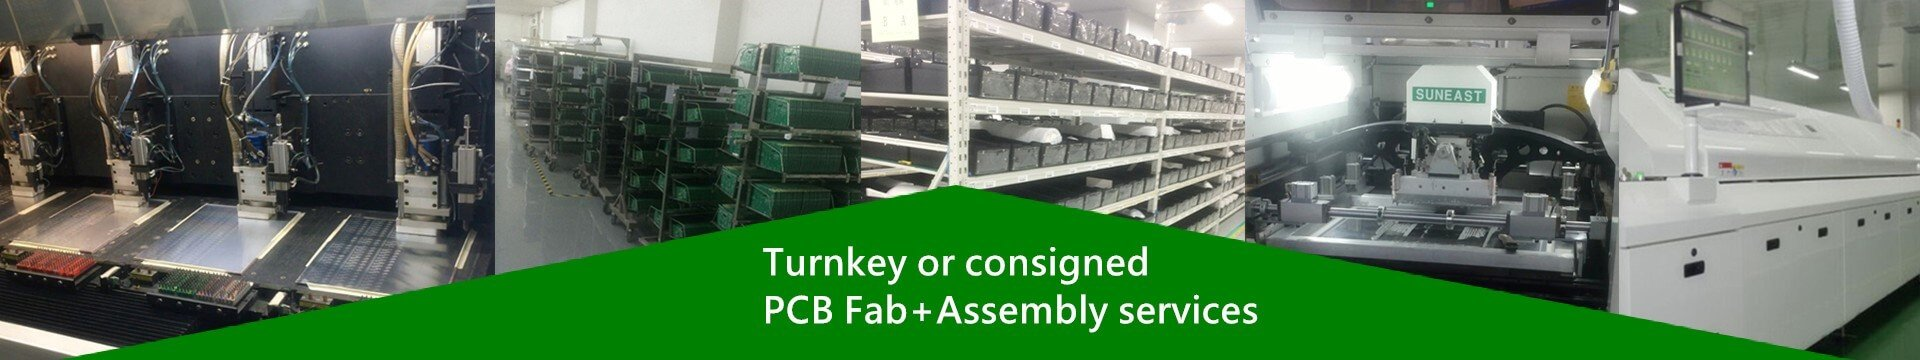 Turnkey consigned pcb fab assembly